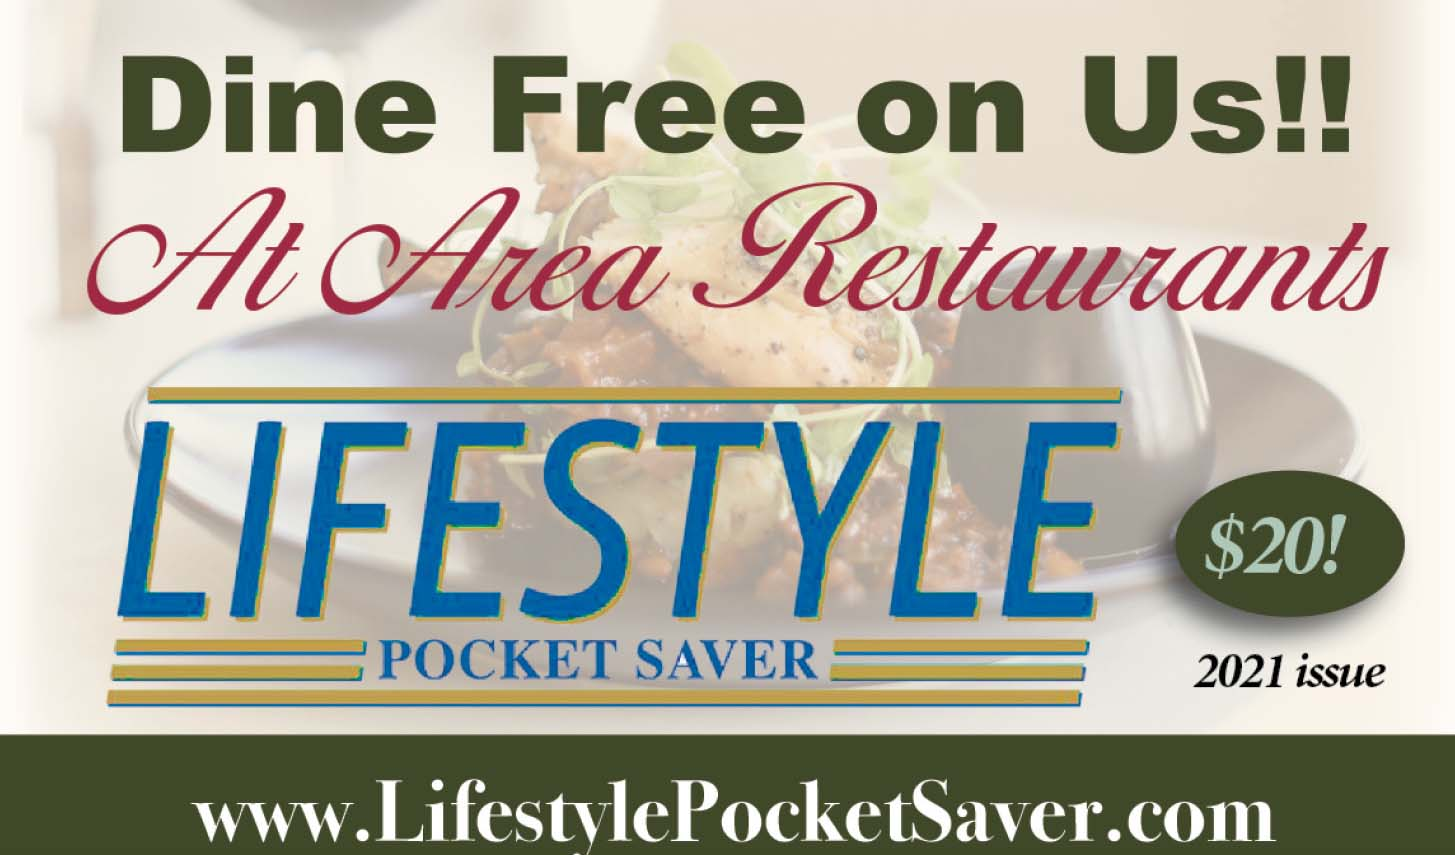 2019 Lifestyle Pocket Saver Book Cover